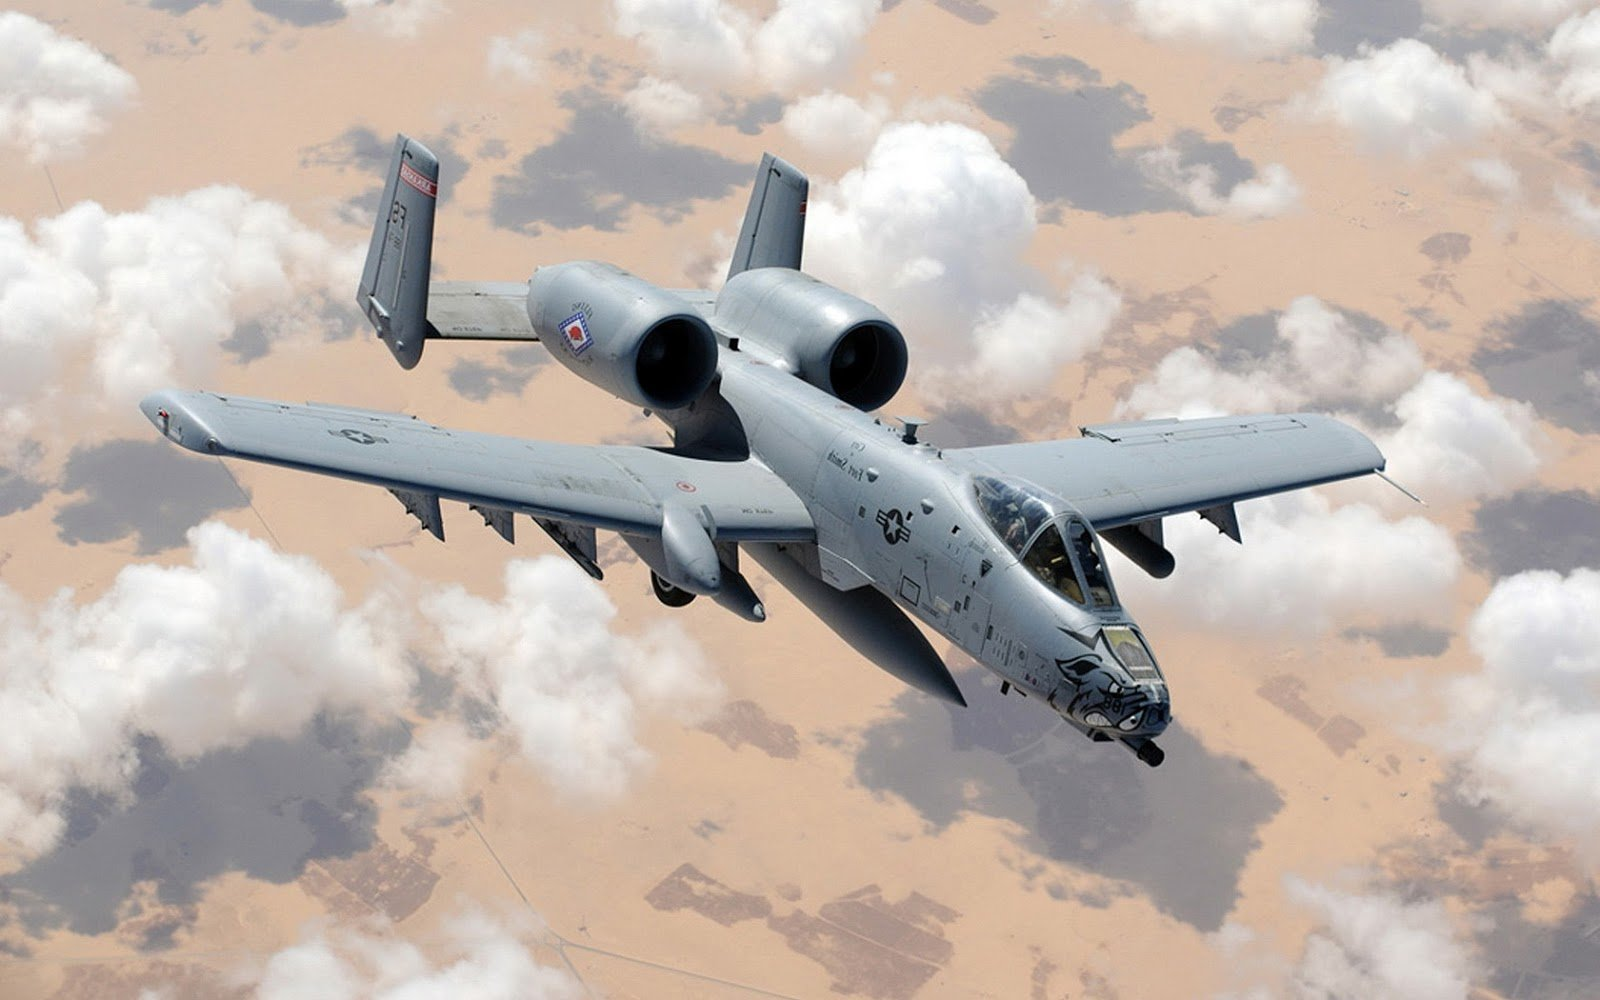 A10 Warthog Wallpaper Hd galleryhipcom   The Hippest 1600x1000